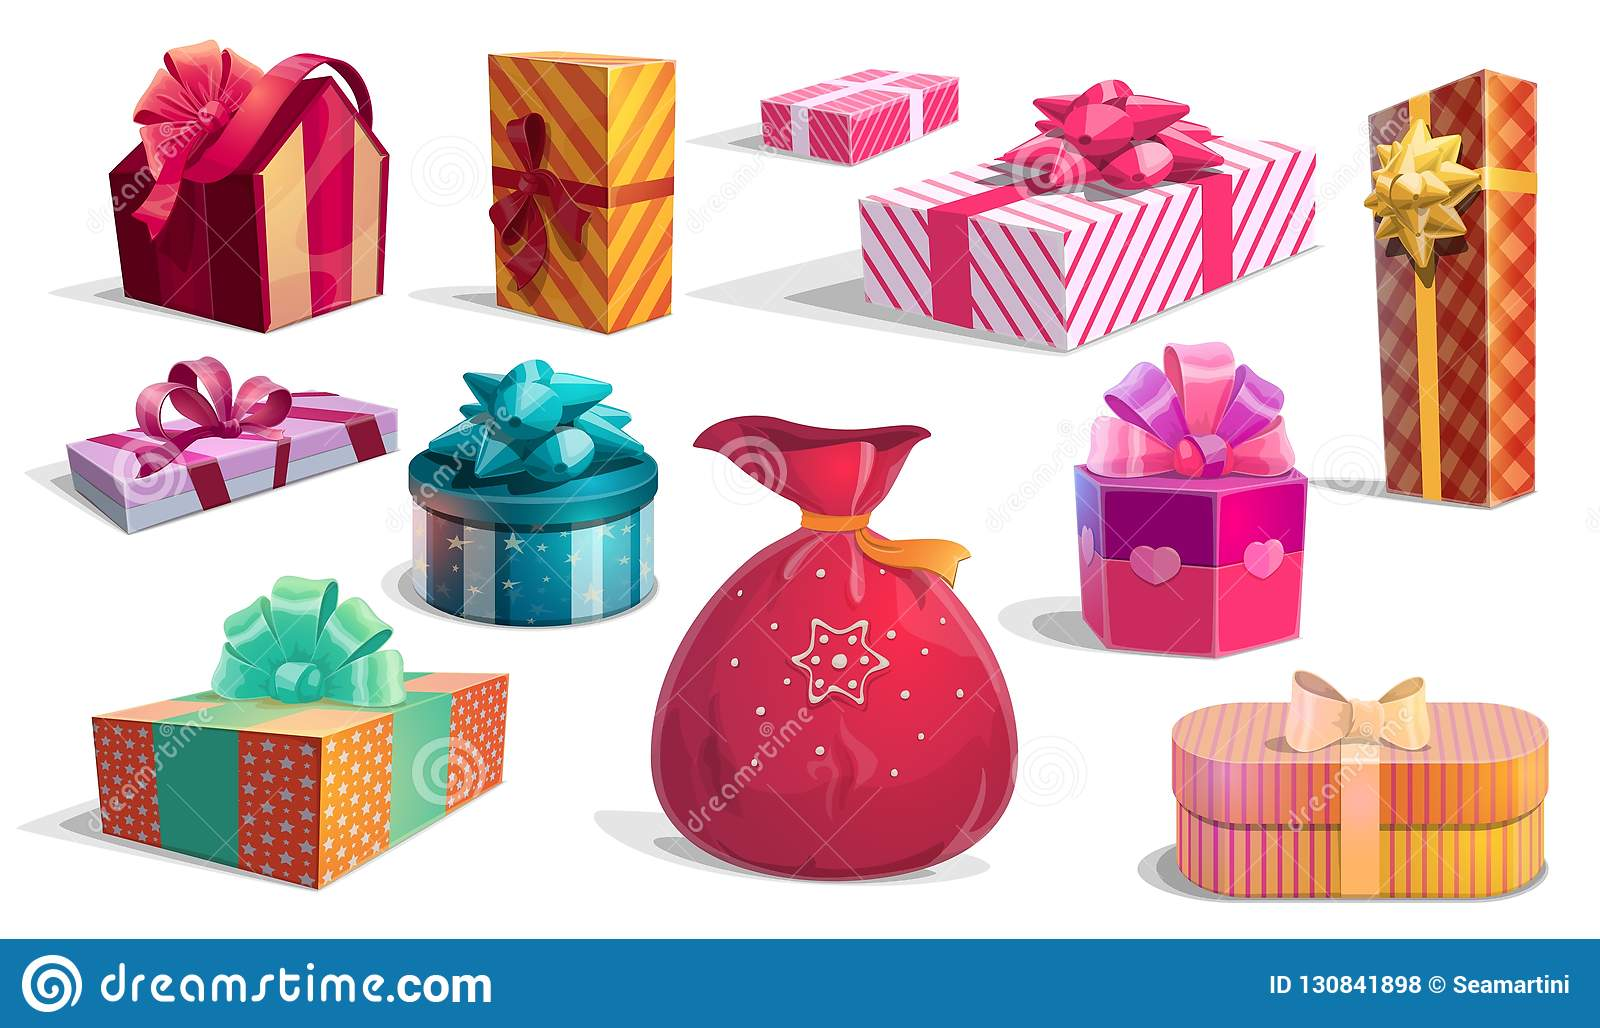 Holidays Gift Boxes And Presents Stock Vector Illustration Of